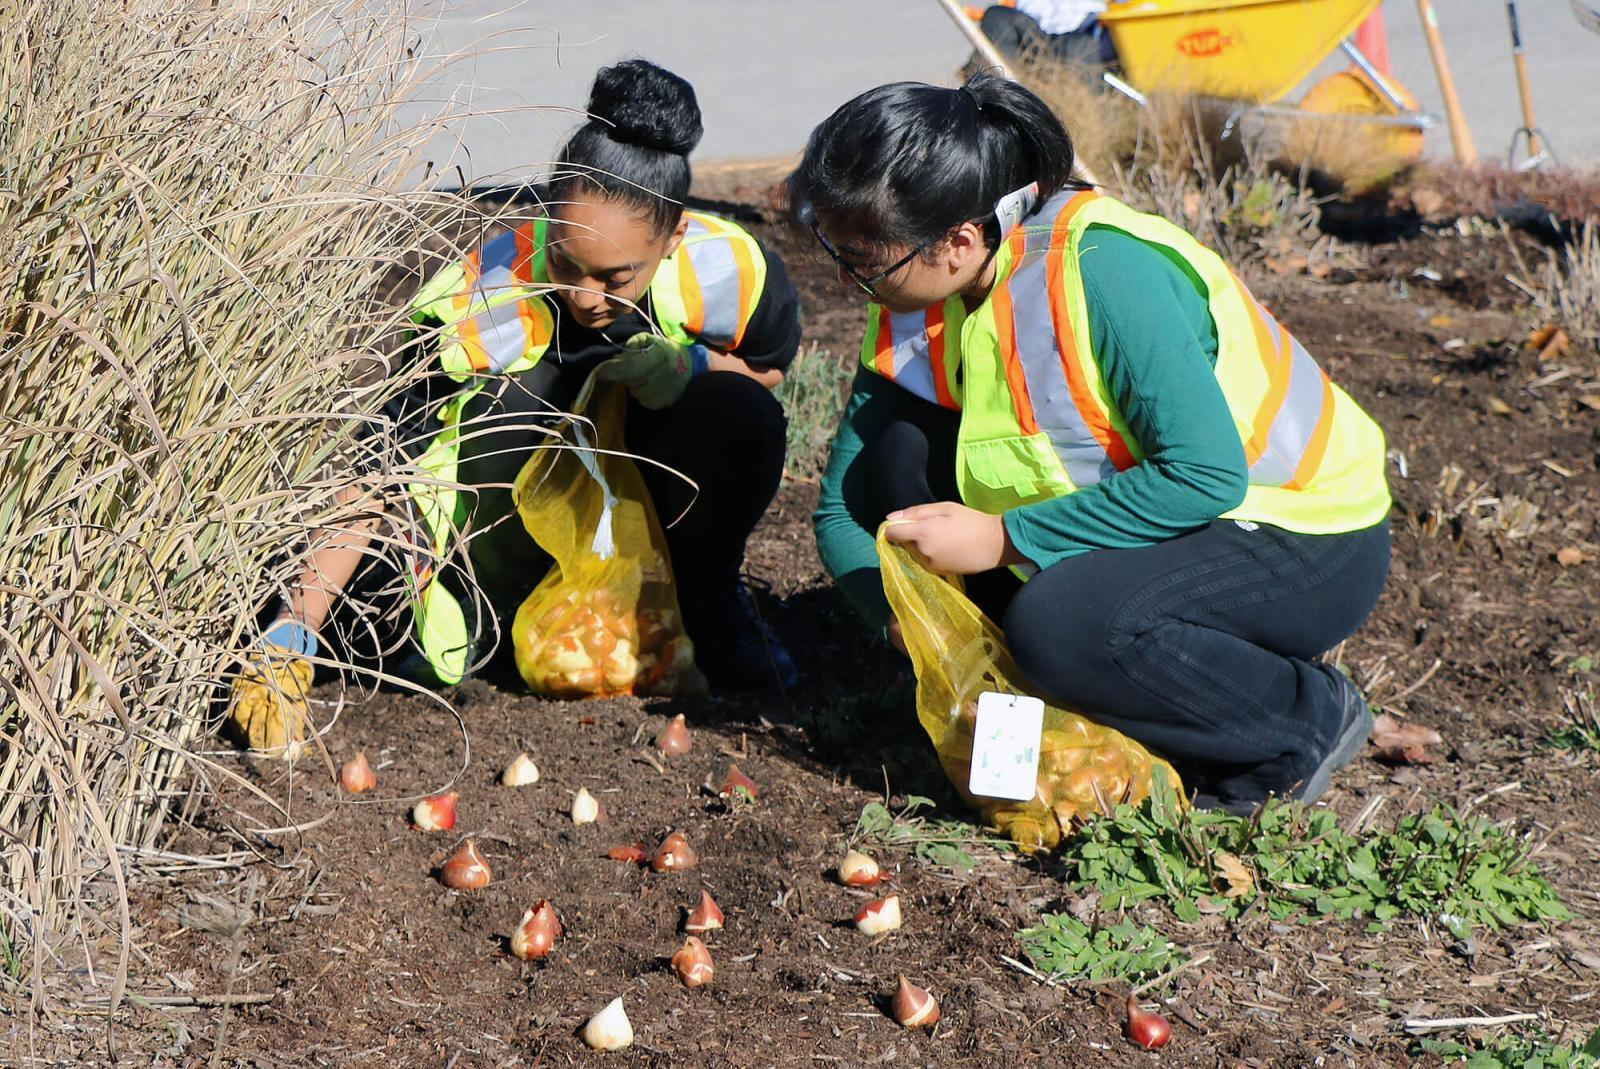 Students from St. Joan of Arc Catholic Secondary School plant over 6,000 bulbs around the LO site.